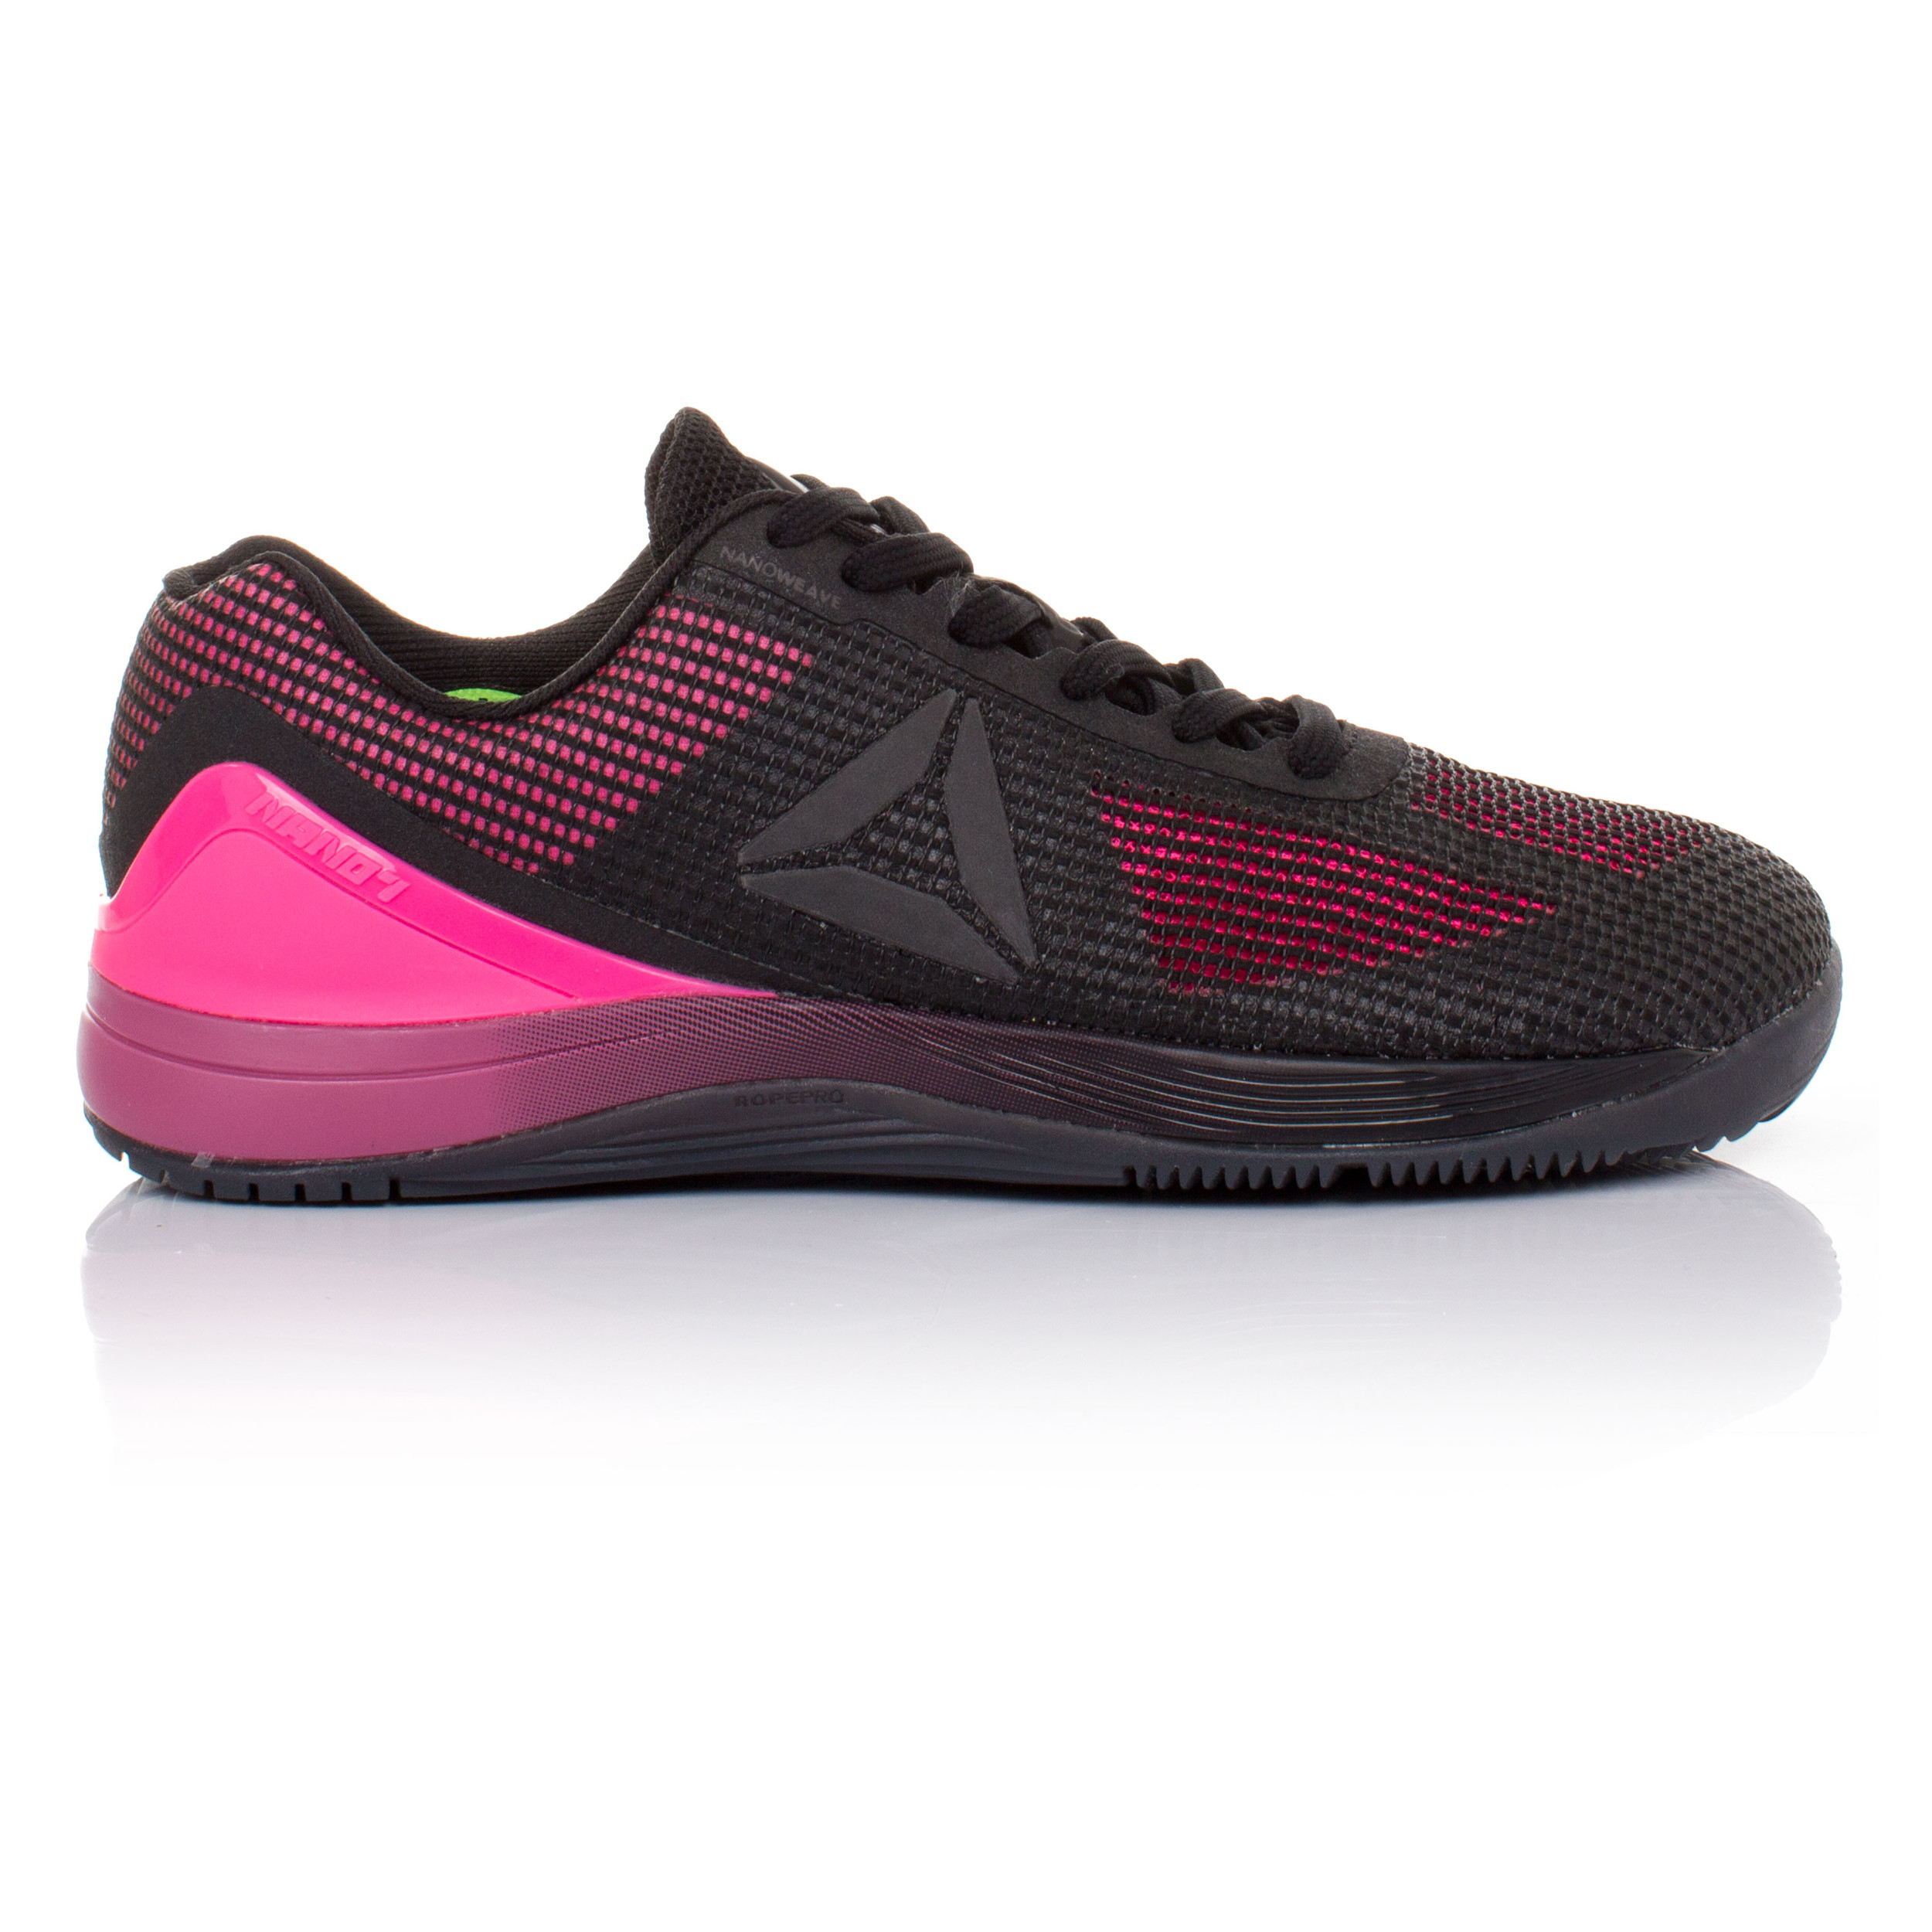 reebok nano femme rose pas cher off40 r ductions. Black Bedroom Furniture Sets. Home Design Ideas